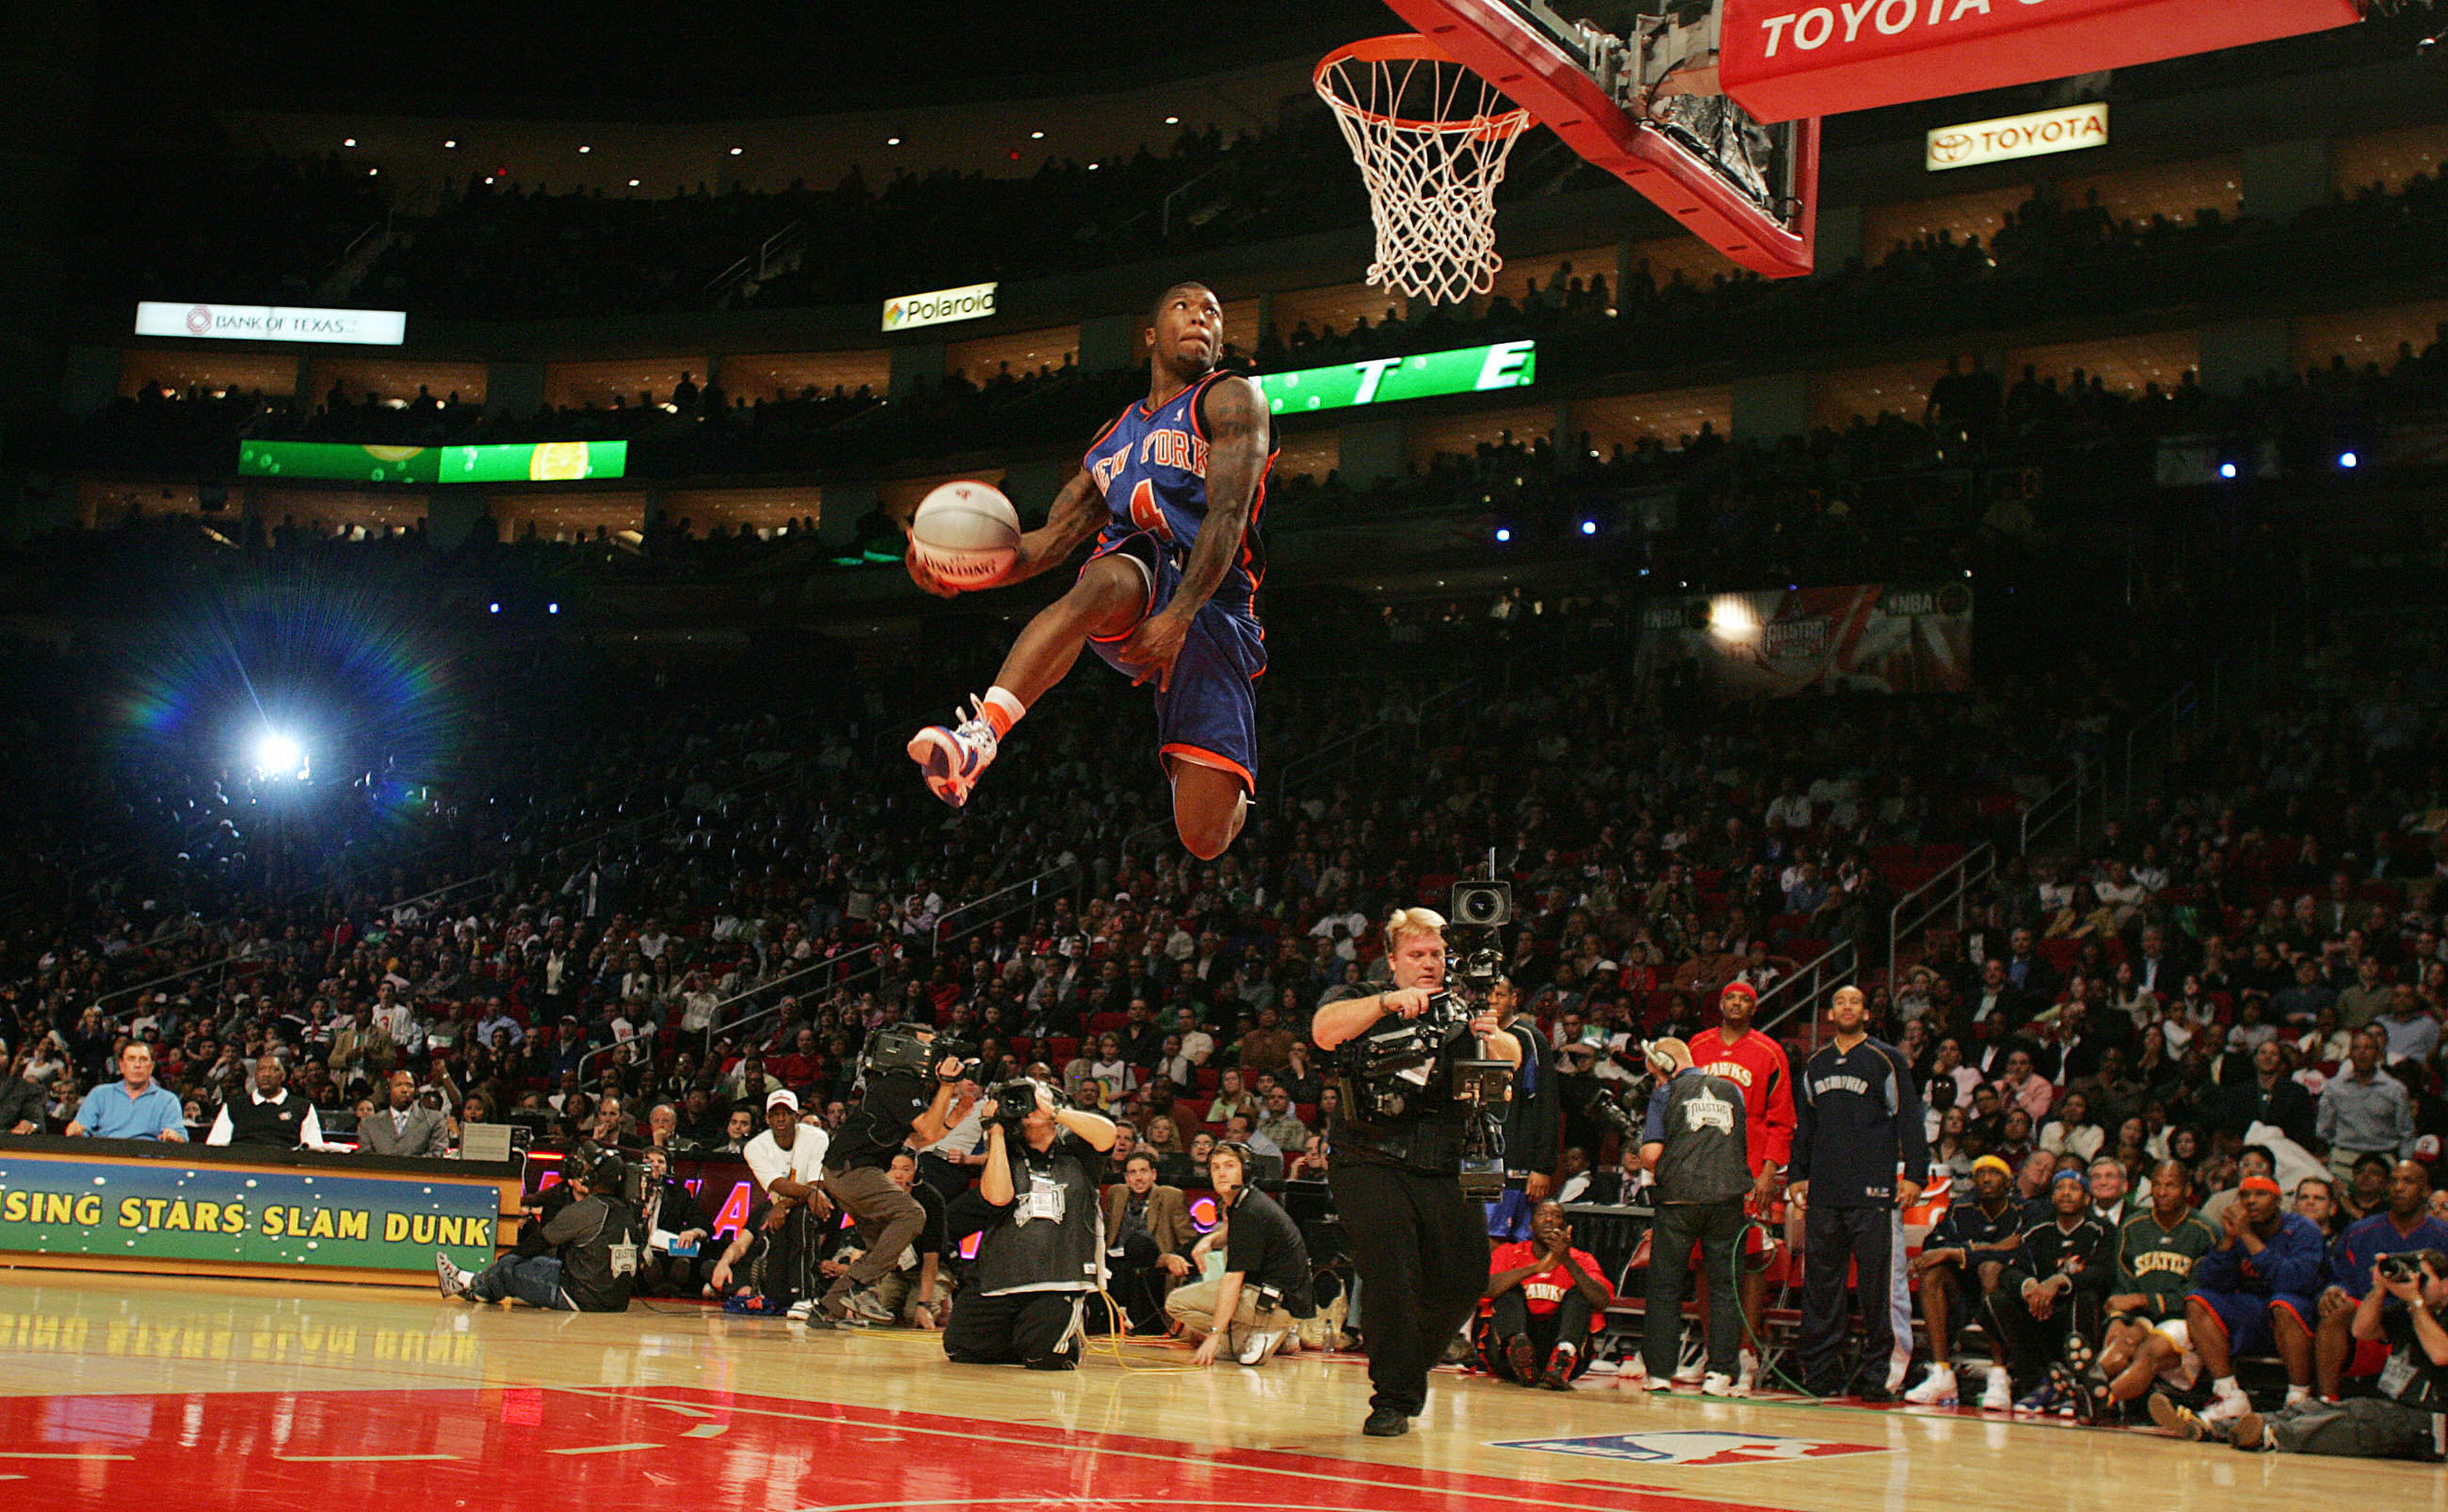 Nate Robinson, Jake Paul's Newest Foe, Earned Nearly $25 Million in the NBA